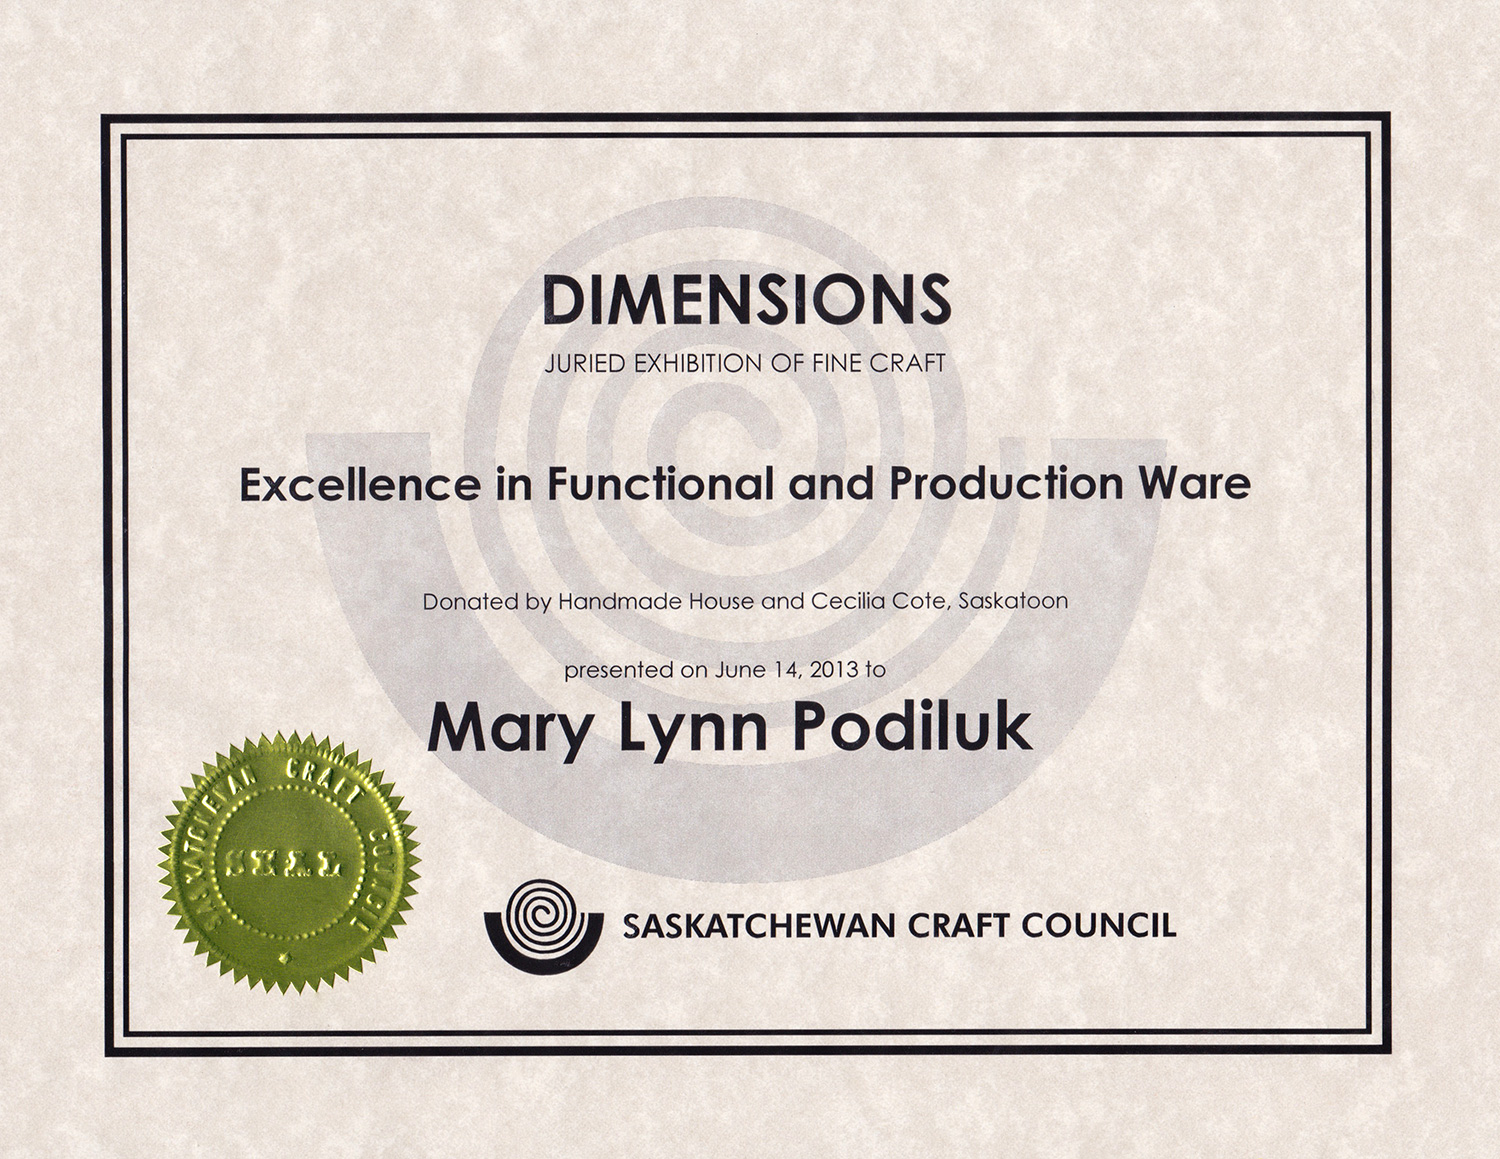 Award for Excellence in Functional & Production Ware, 30th Biennial Dimensions Exhibition, Saskatchewan Crafts Council, SK